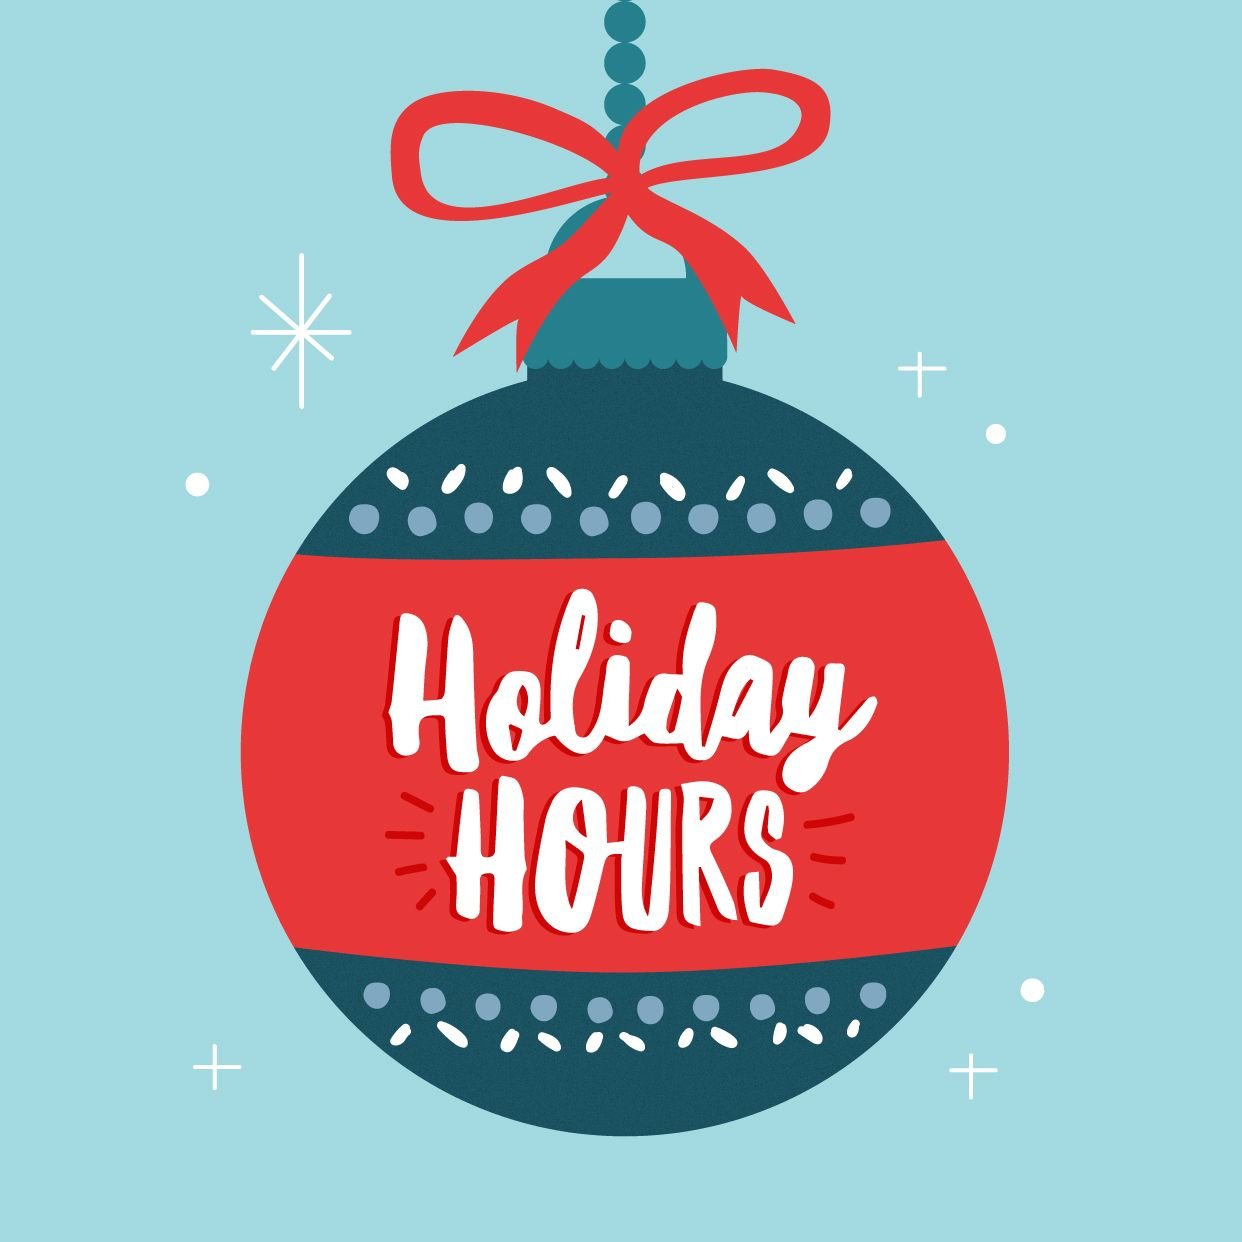 We Want To Be Sure You Know When We Are In The Office Over The Holidays Here Are Our Hours 12 22 2016 Open Dental Posts Dental Marketing Dental Social Media Closed for the holidays sign